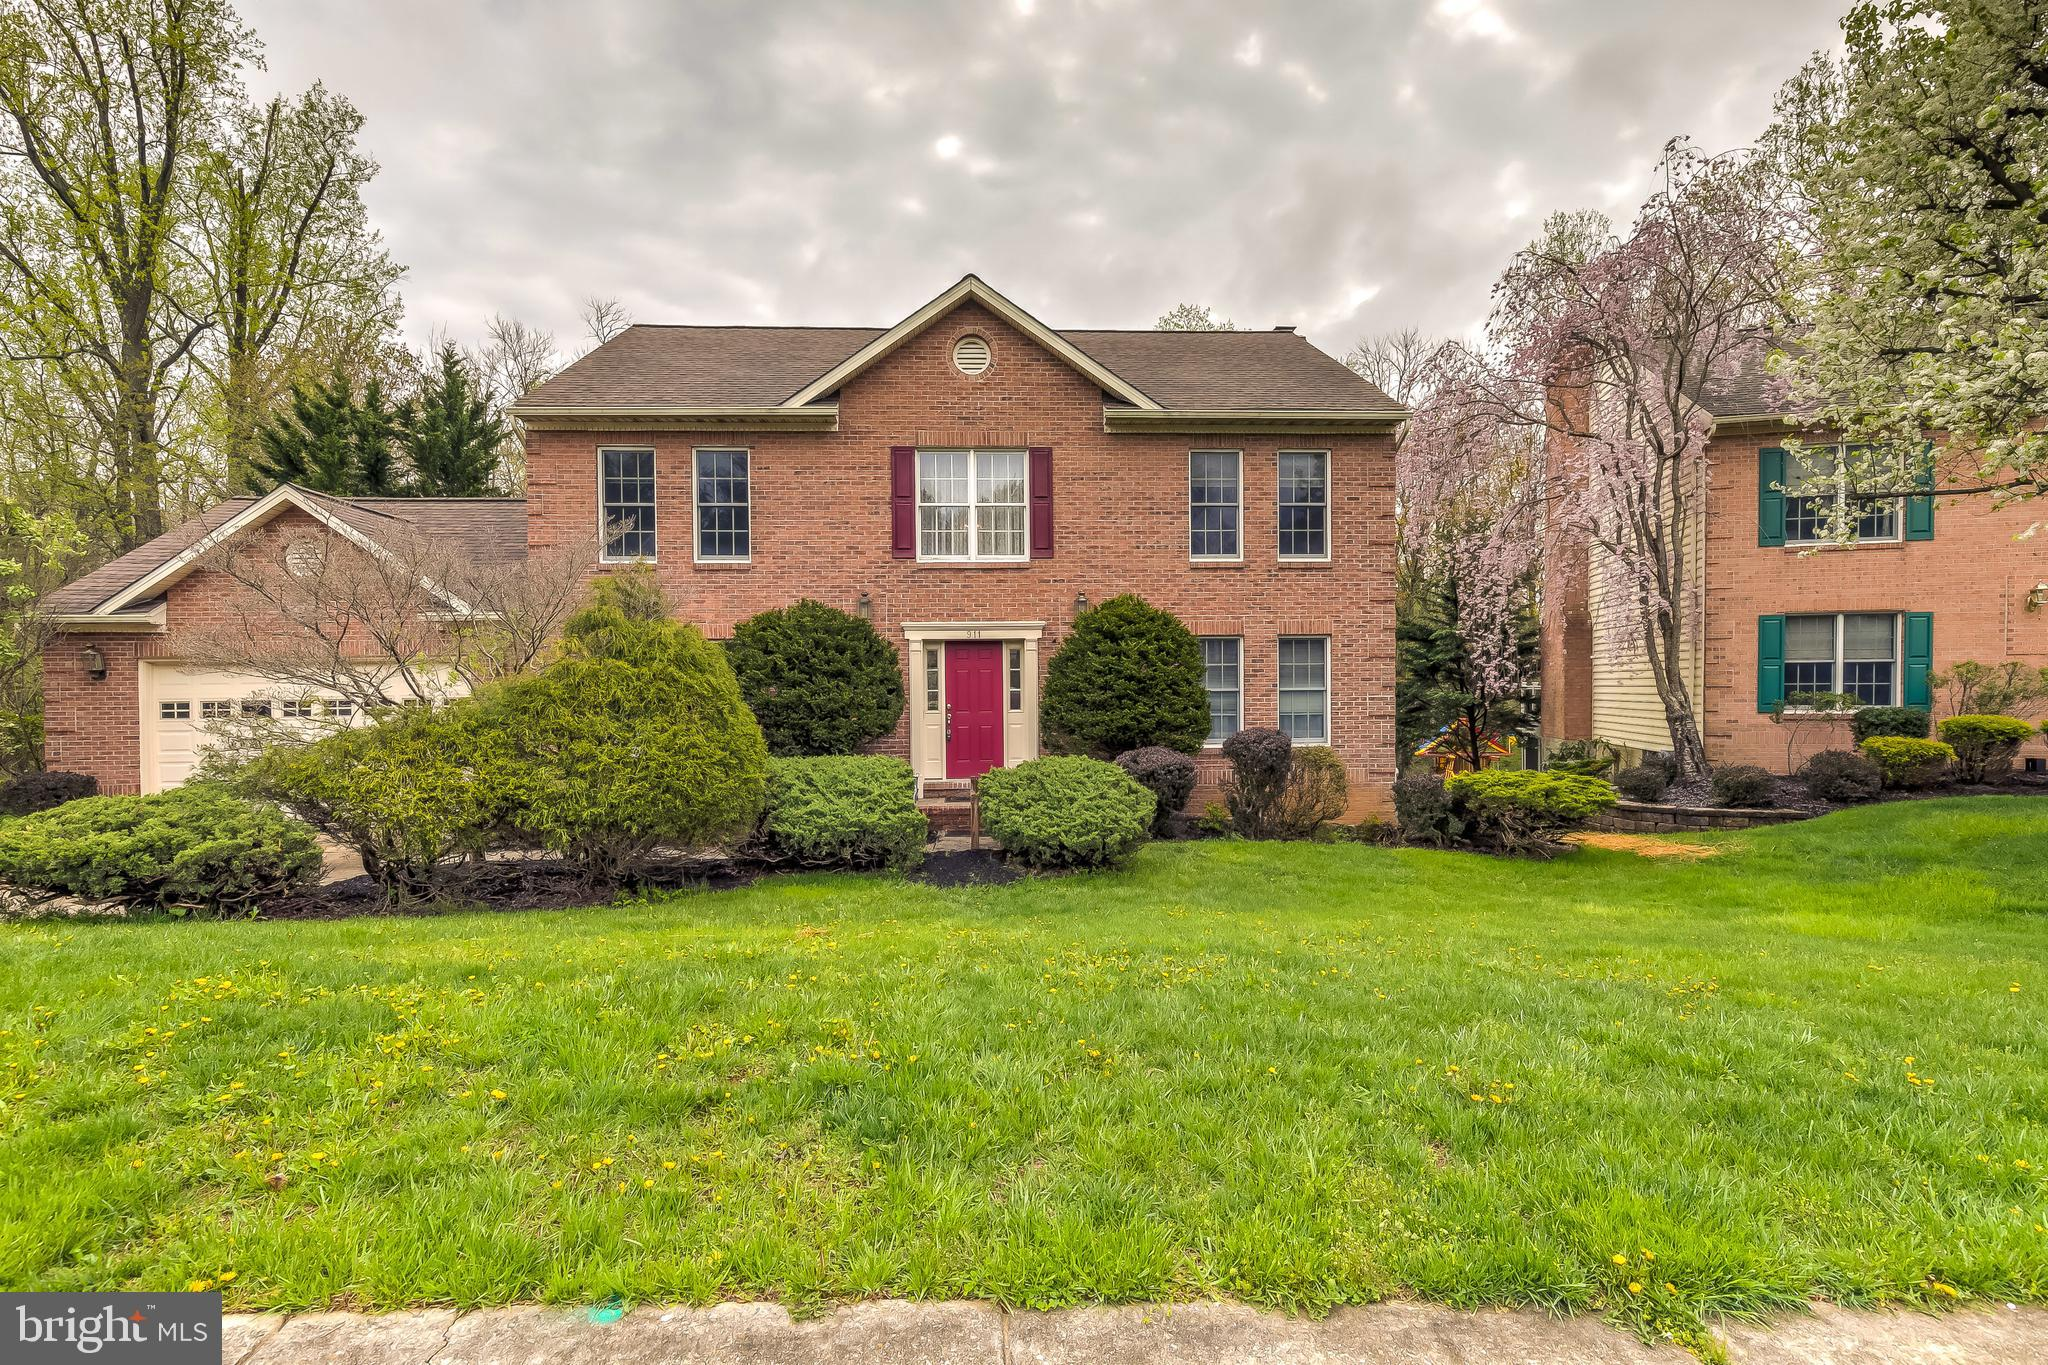 Welcome home to this move-in ready colonial style home that backs to a peaceful setting of trees and